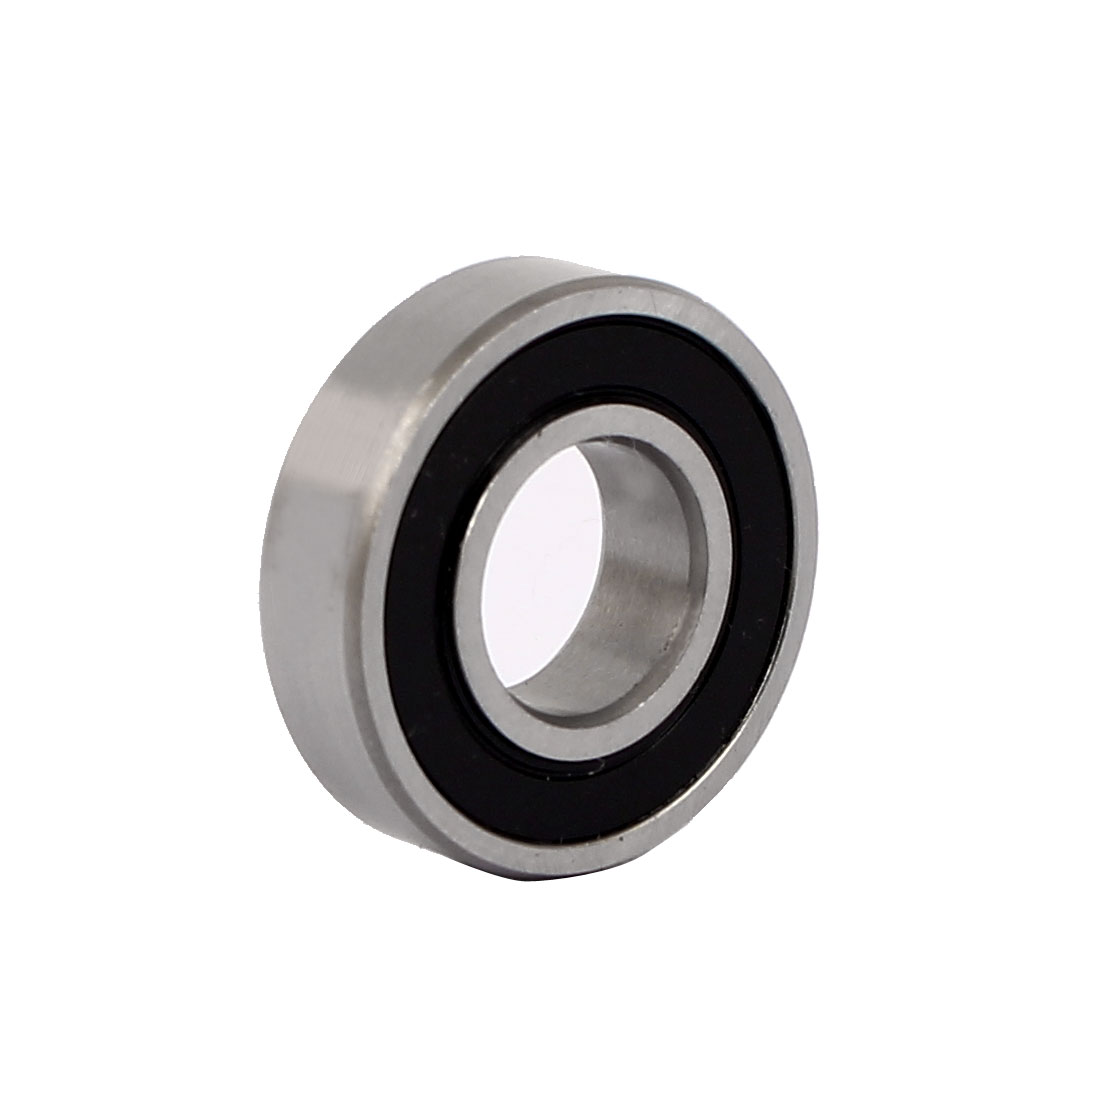 2RS6900 22mmx10mmx6mm Single Row Deep Groove Shielded Ball Bearing